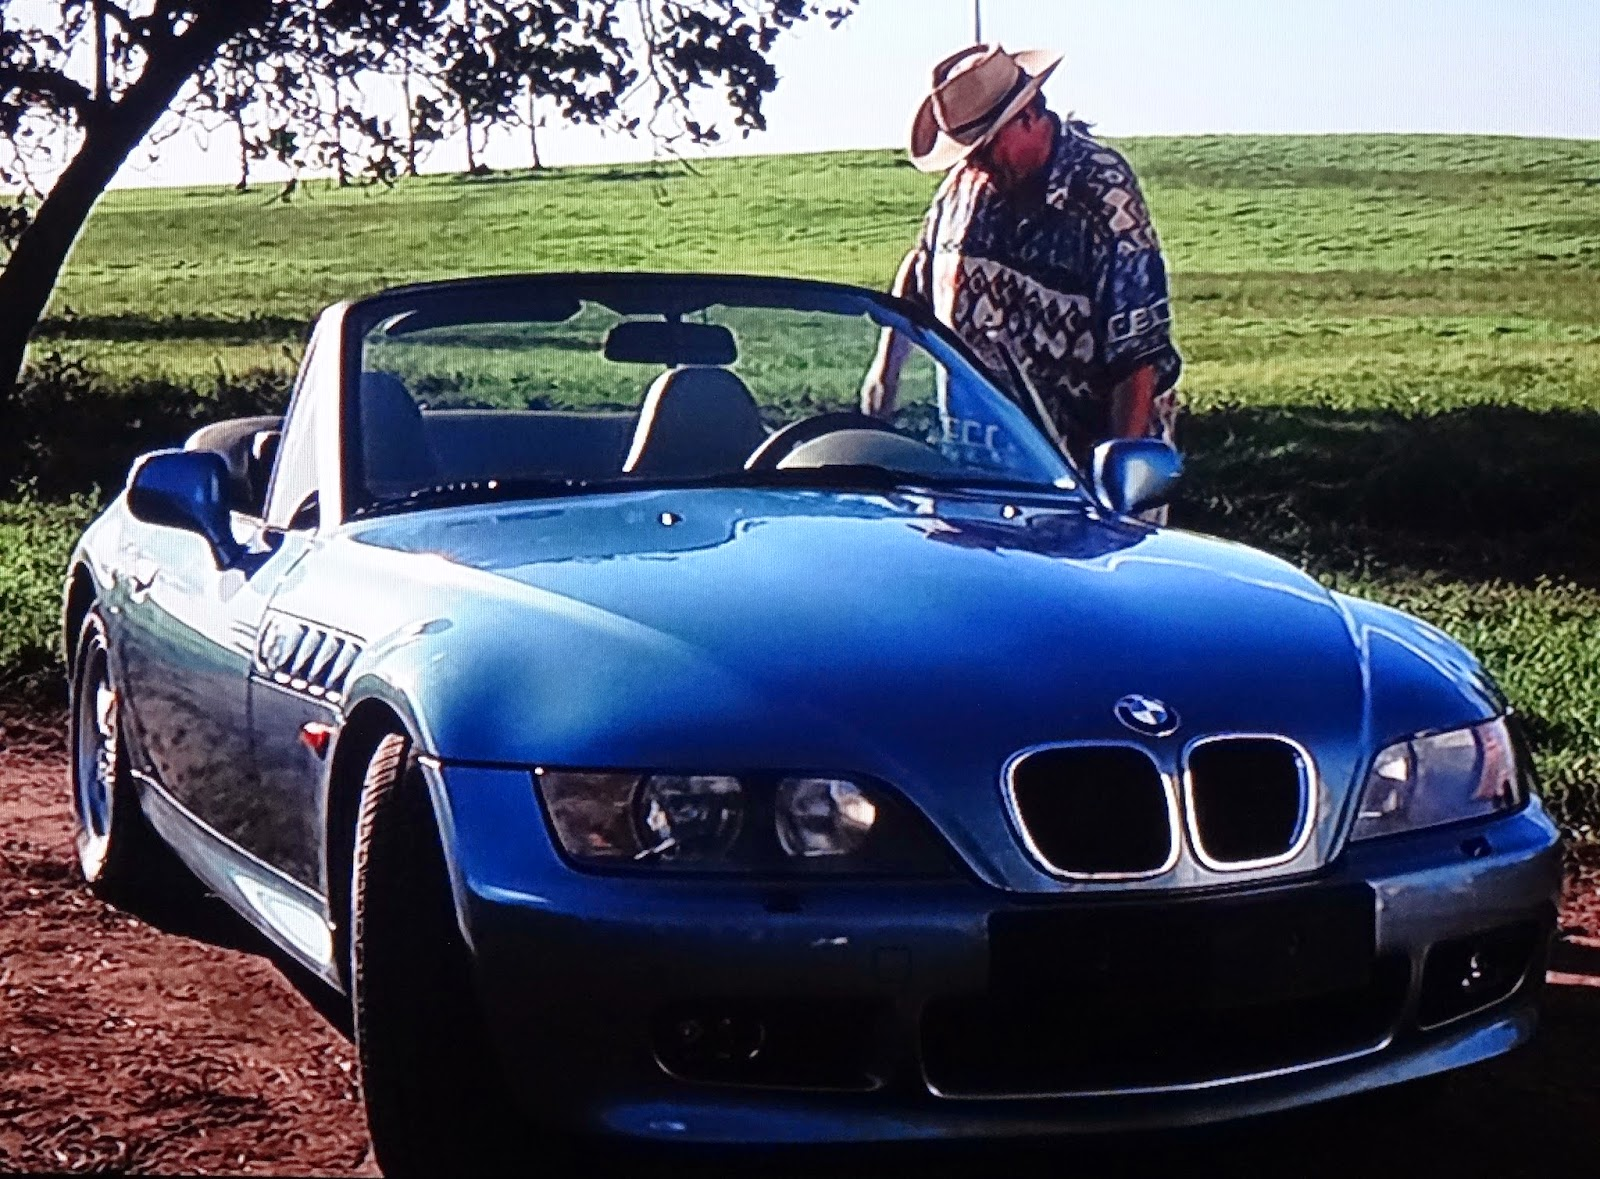 007 Travelers 007 Vehicle Bmw Z3 Goldeneye 1995